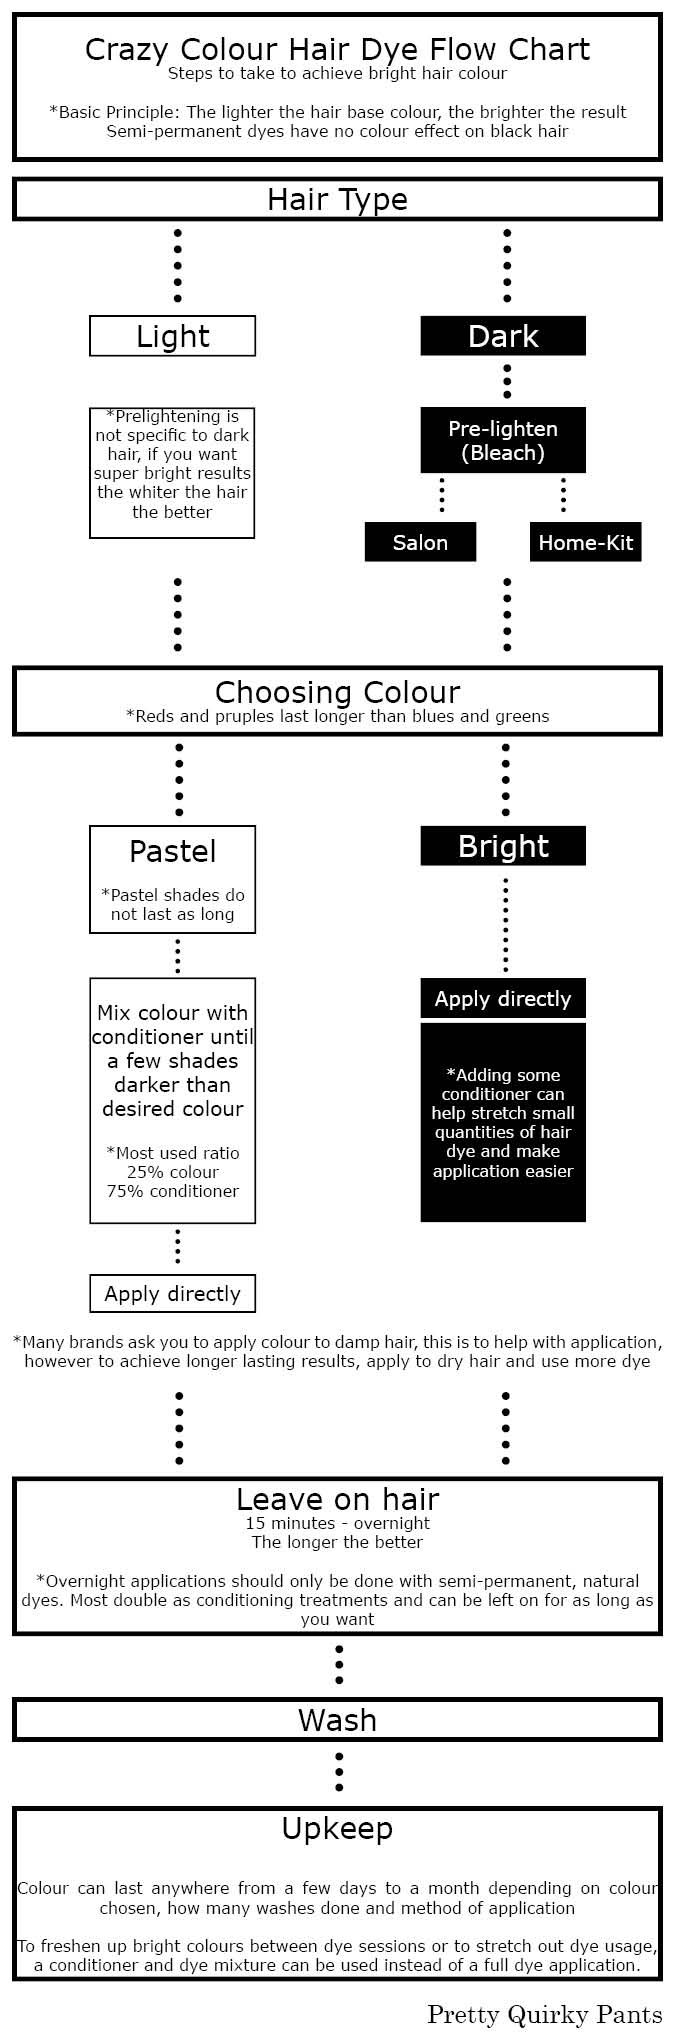 Correcting hair dye with a color wheel awesome p just look at the correcting hair dye with a color wheel awesome p just look at the color opposite of yours and that is what you need to correct your hair pinterest nvjuhfo Image collections